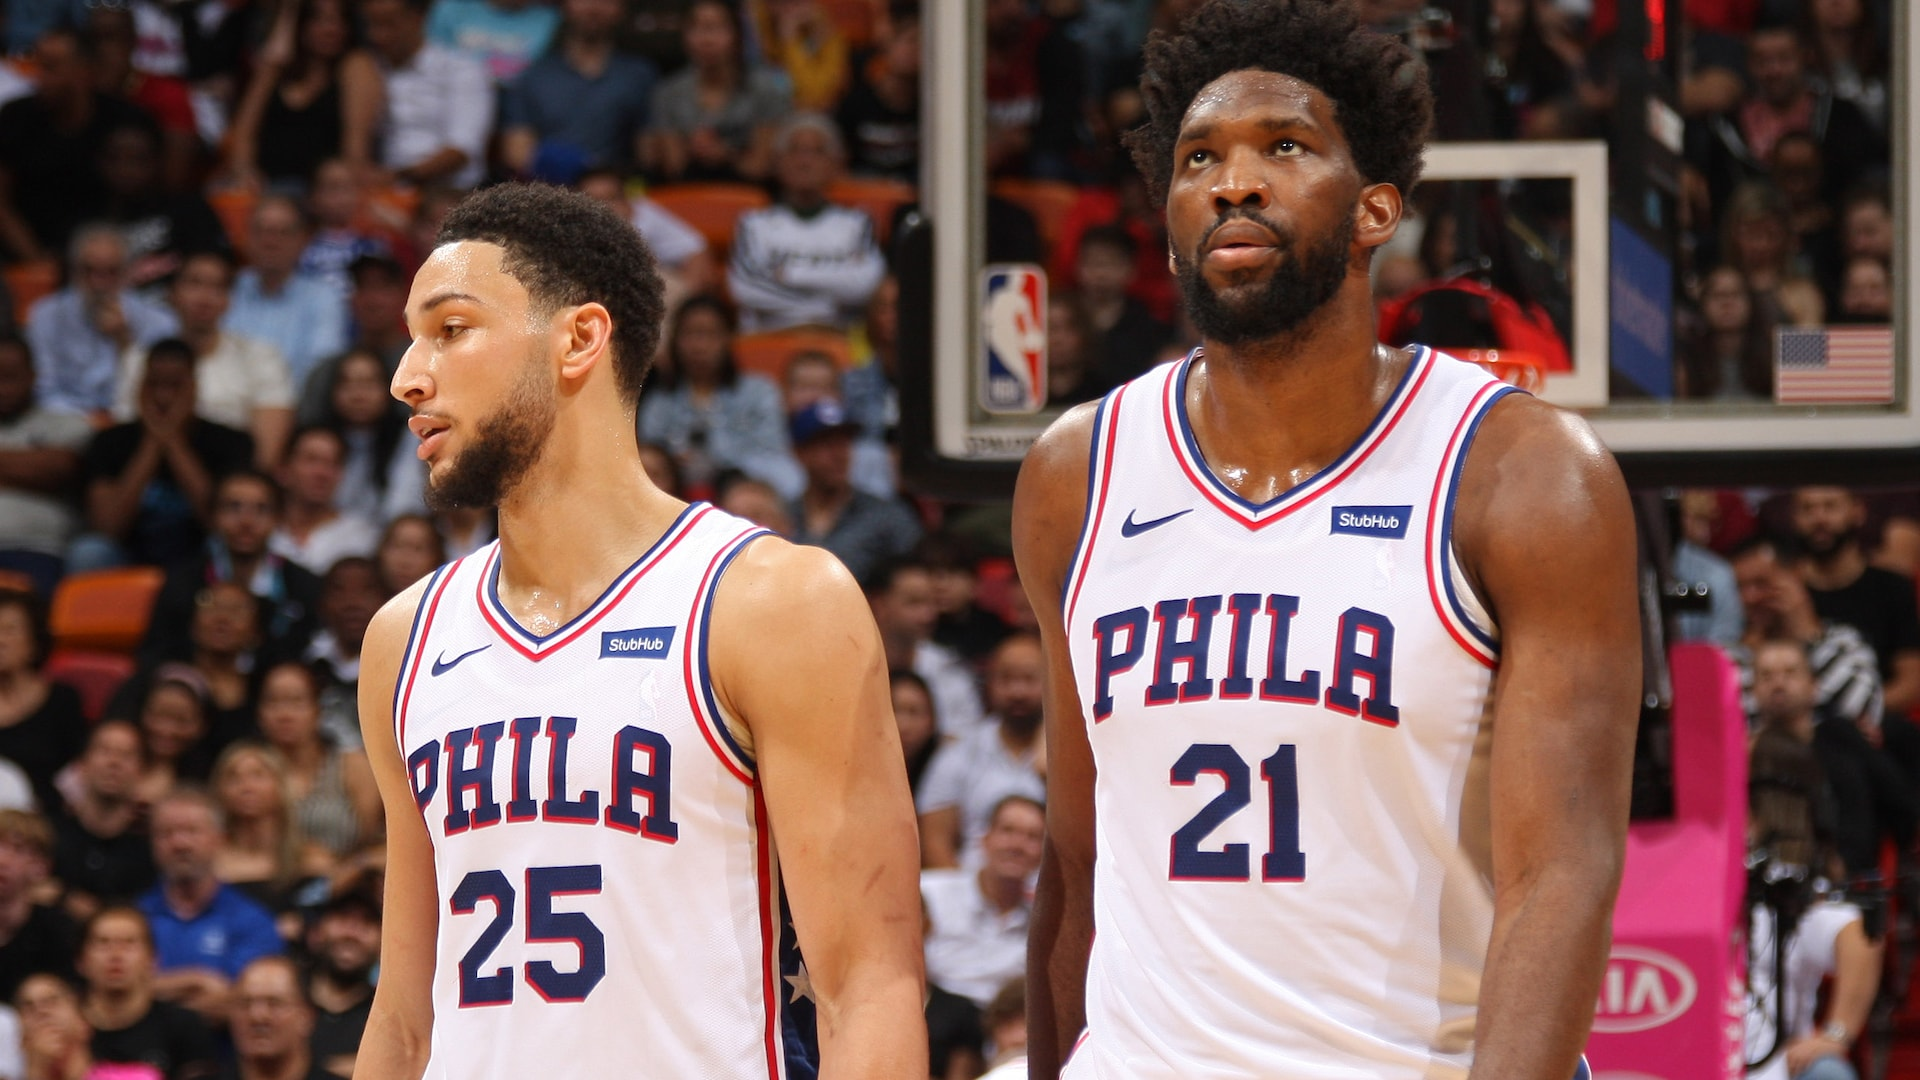 Kia MVP Ladder mailbag: Joel Embiid, Ben Simmons on outside looking in